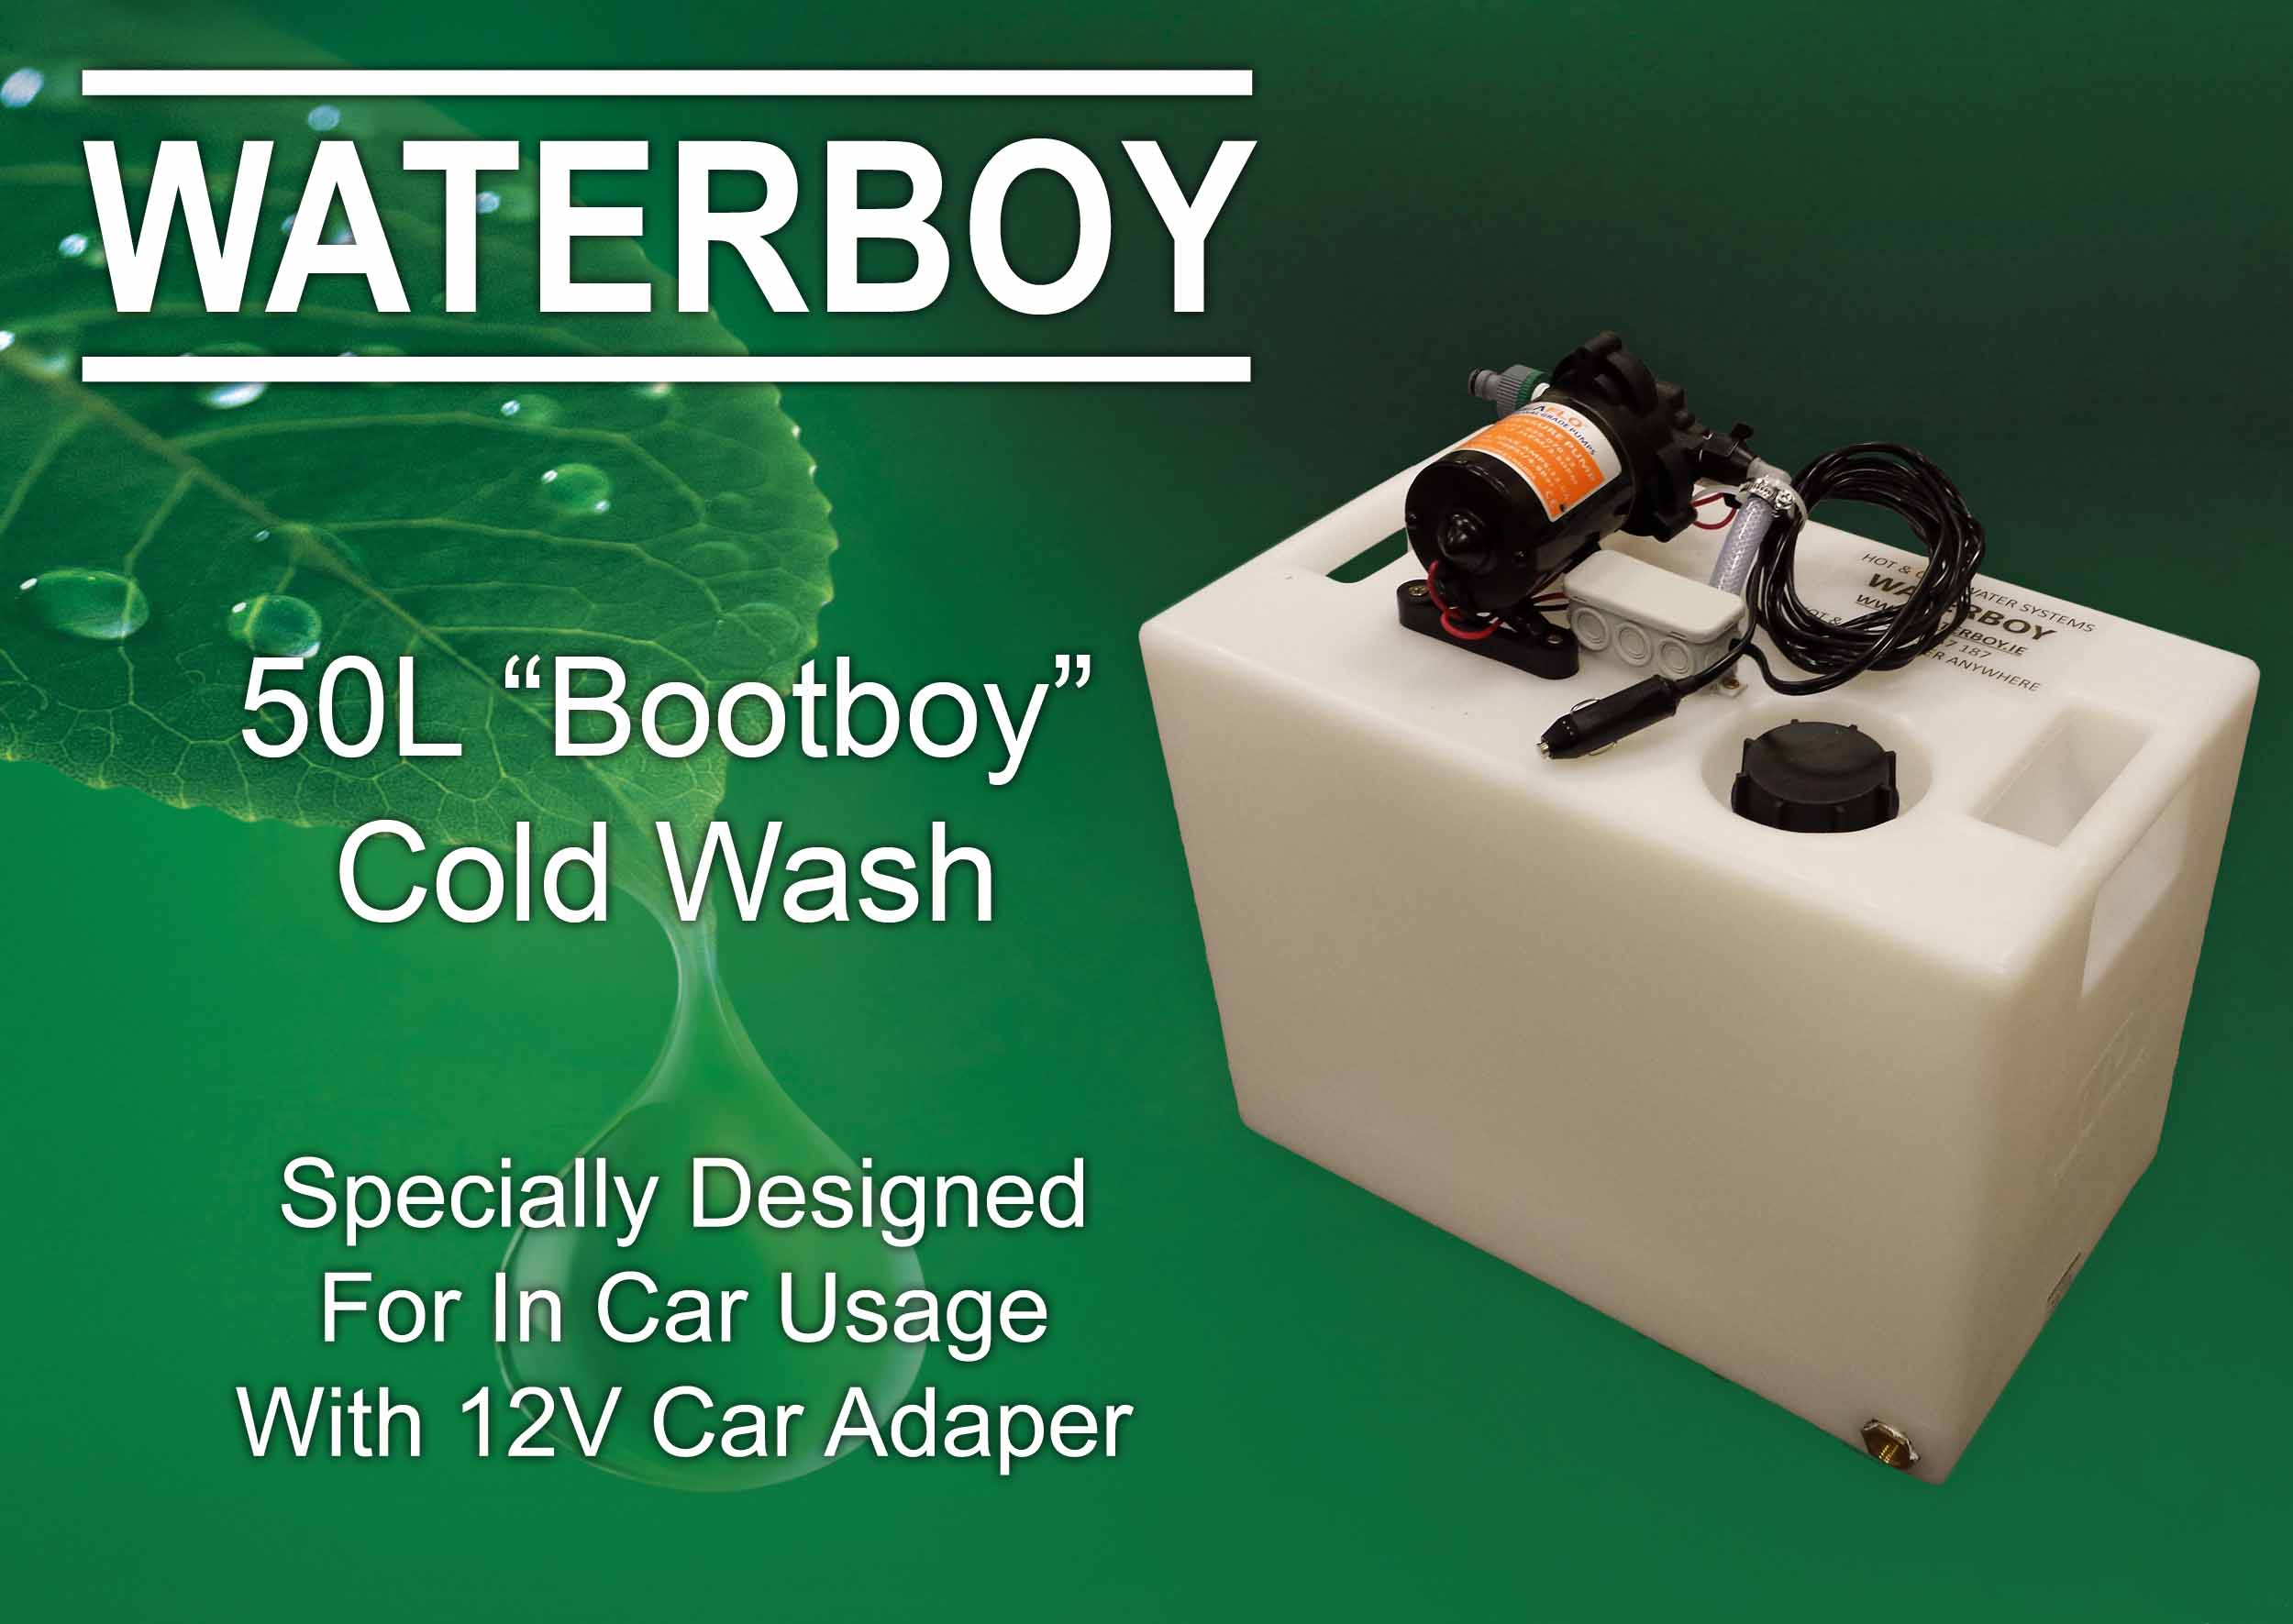 Boot Boy Cold Wash